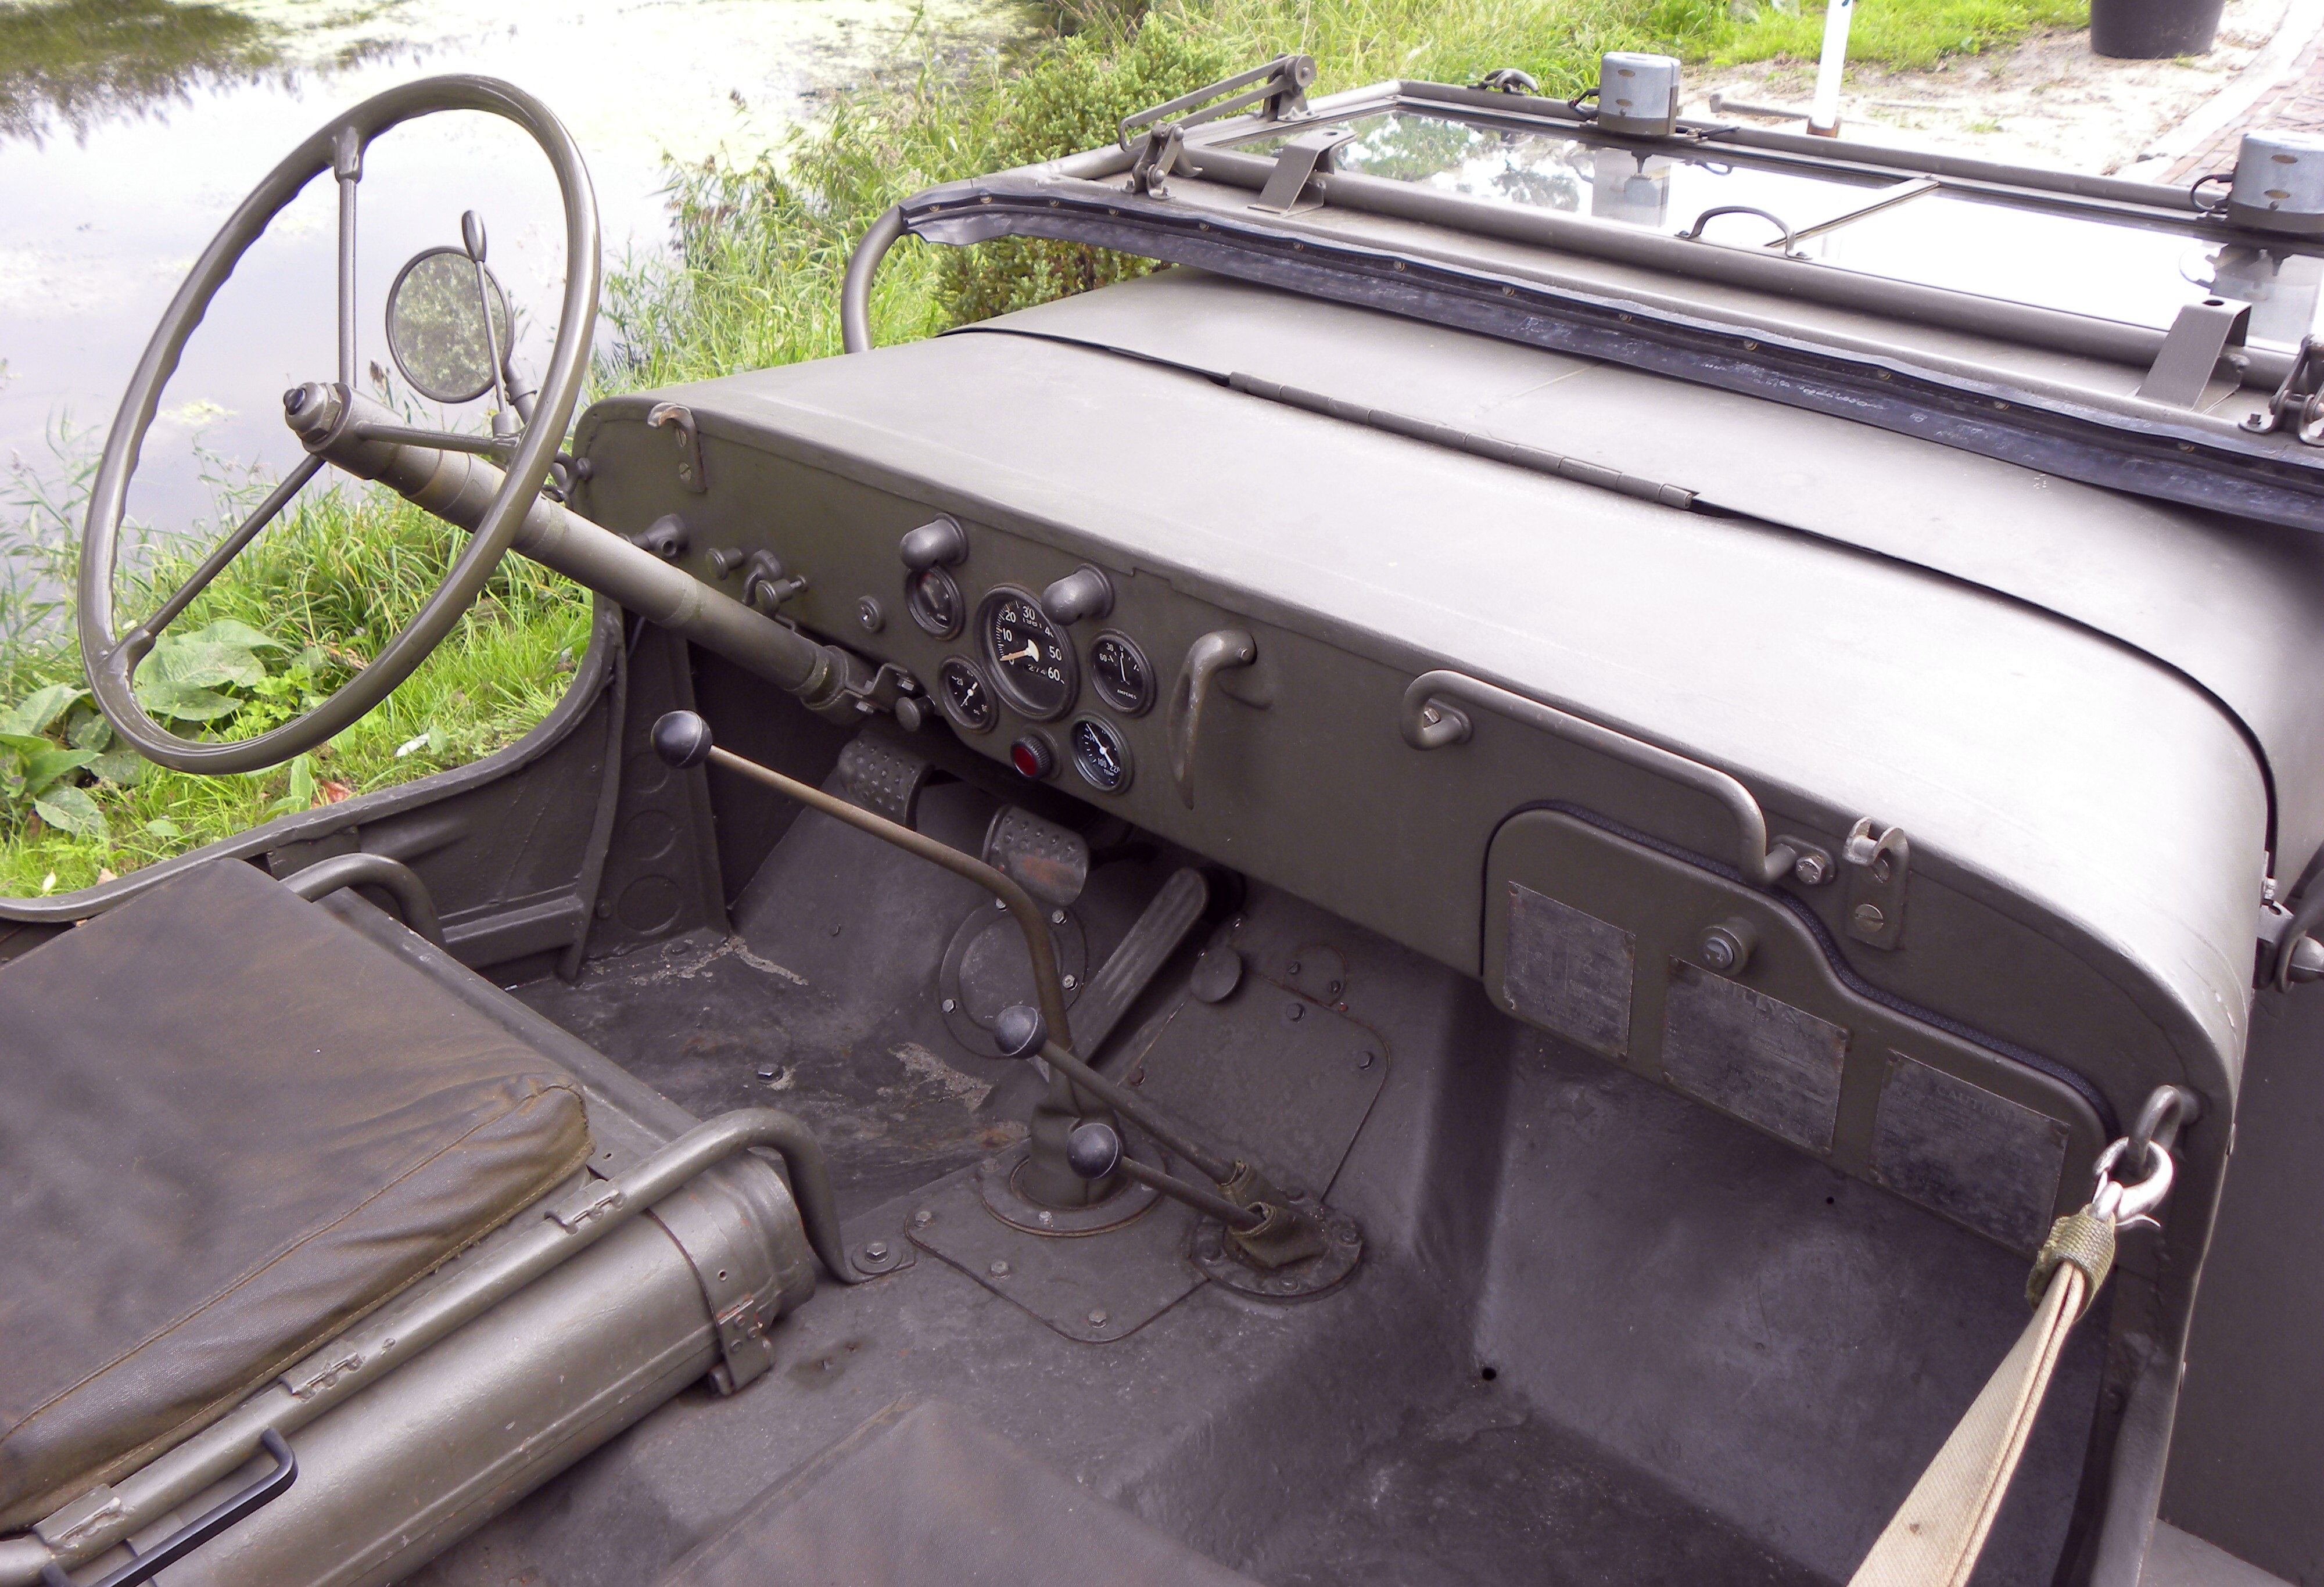 Image 44 Of 50 File1943 Willys Mb Us Army Jeep At 2017 1950 Station Wagon 1943 Images